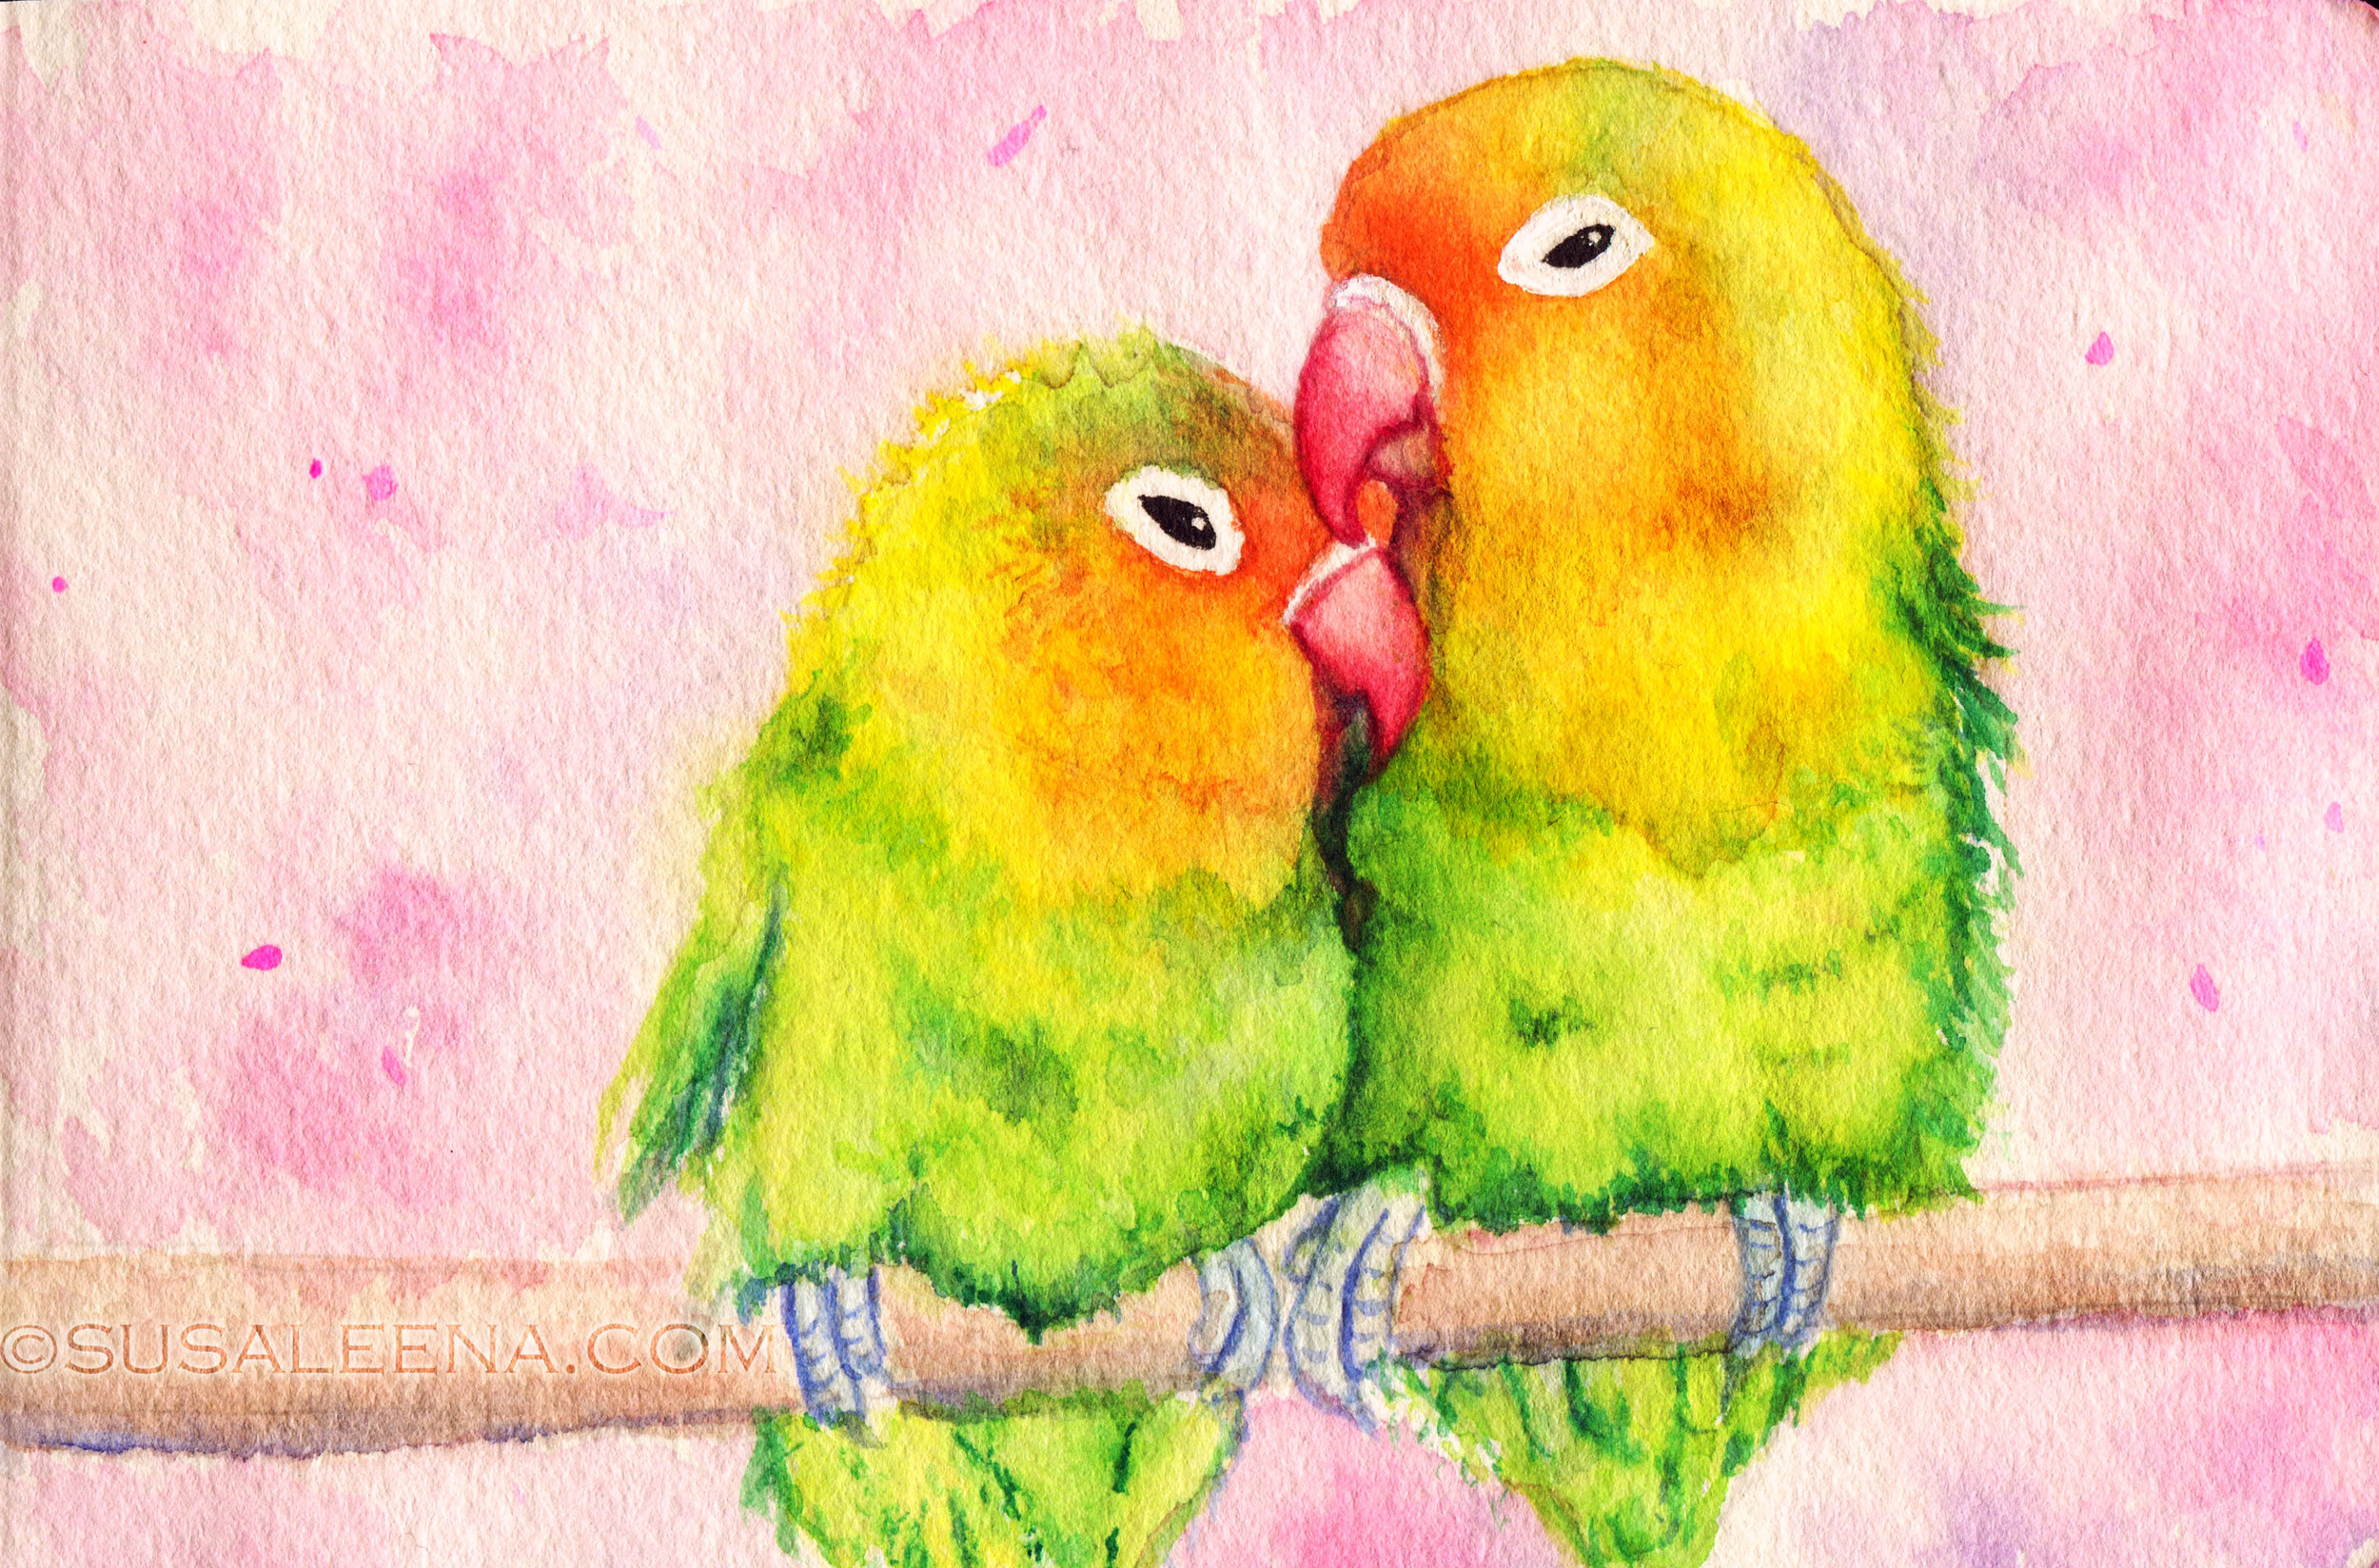 Here's a closeup of the two lovebirds